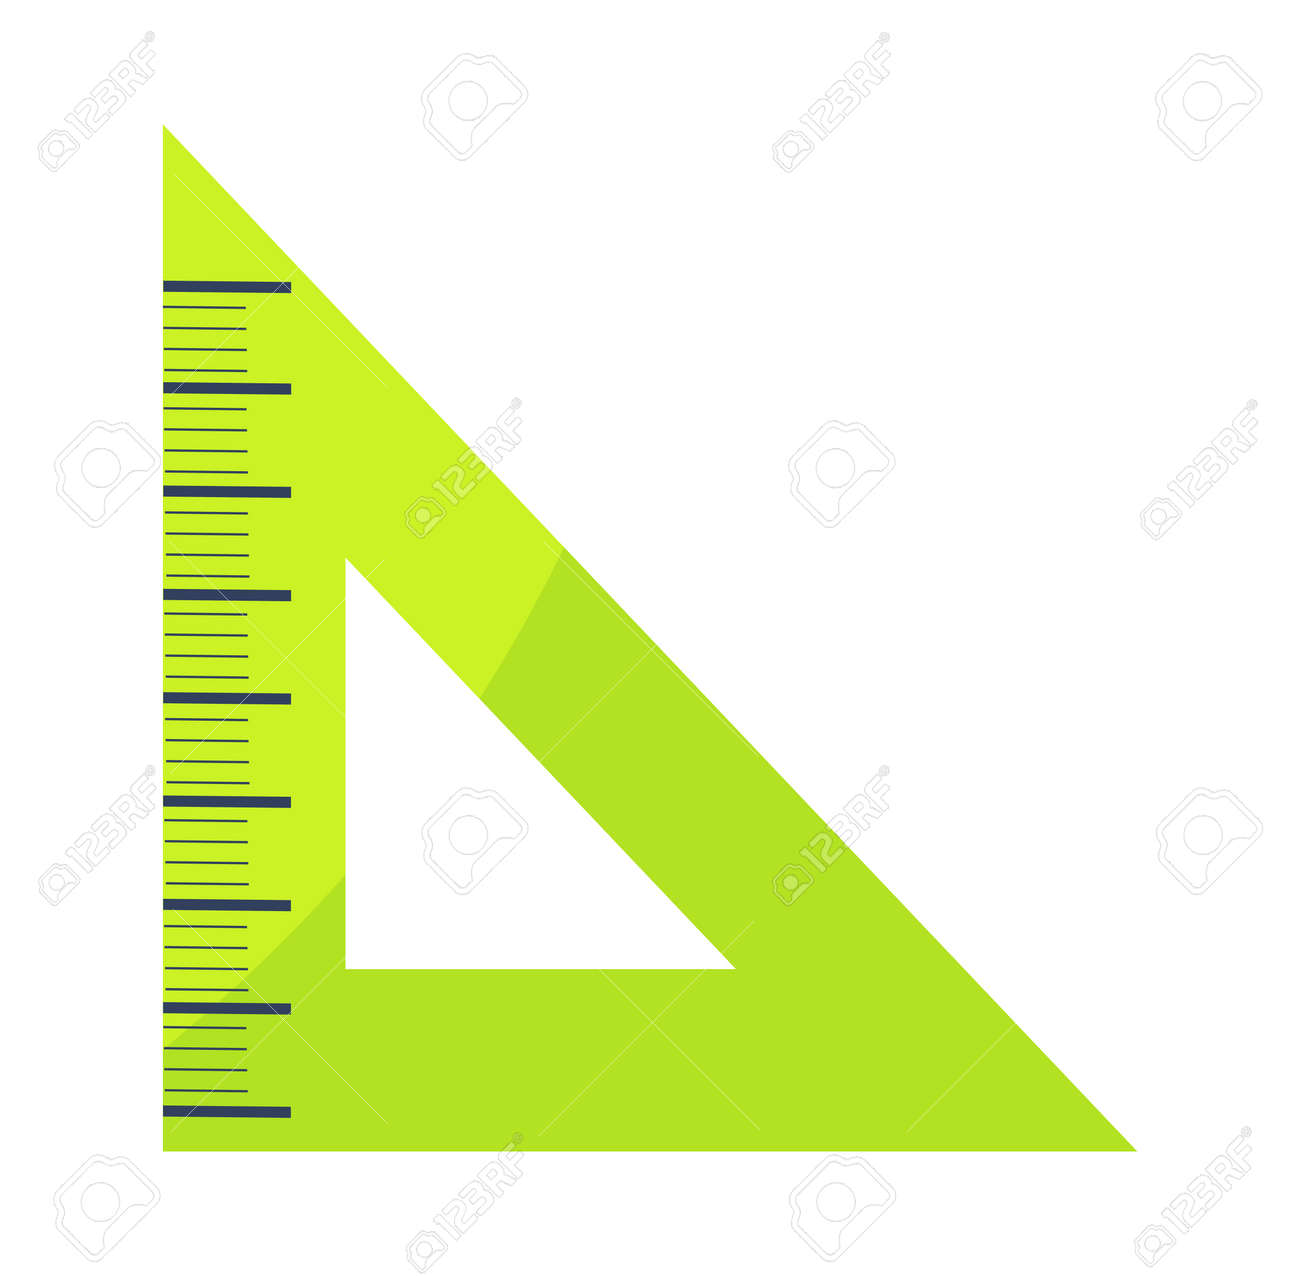 Triangular Shaped Green Ruler Vector Illustration Icon Isolated Stock Photo Picture And Royalty Free Image Image 90490781